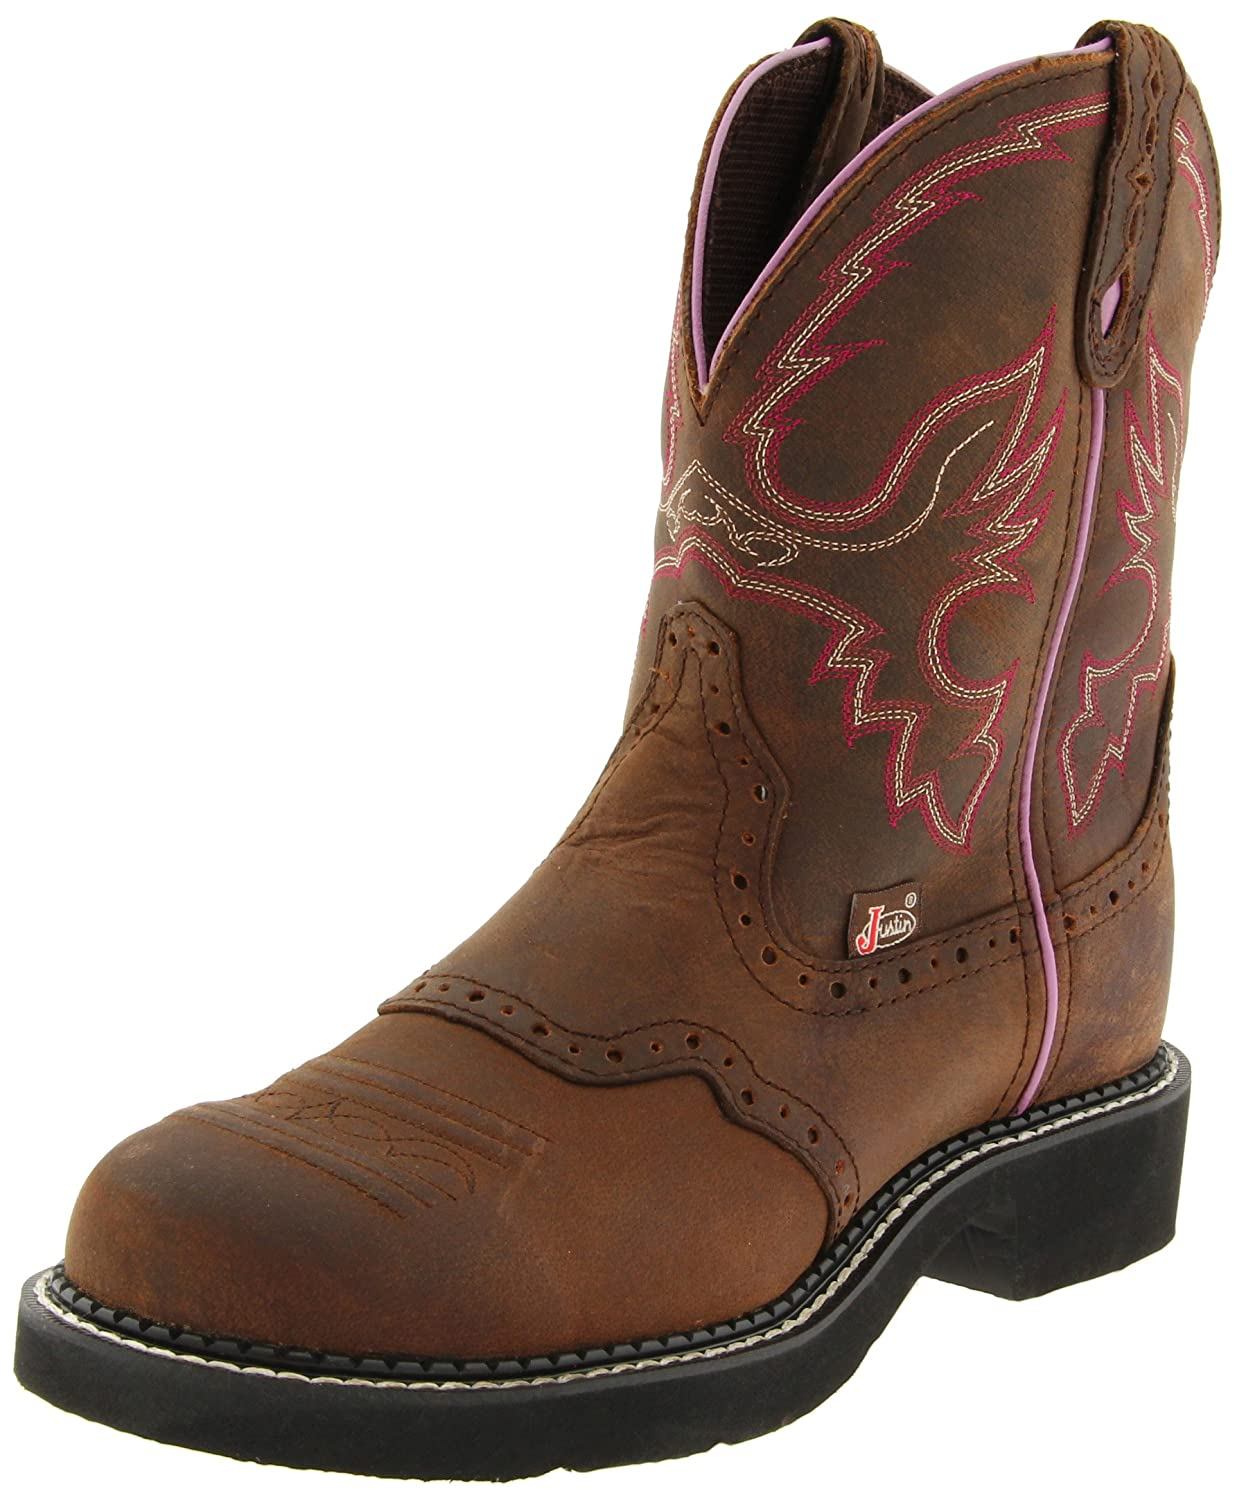 bdabbd24cca Justin Boots Women's Gypsy Collection Western Boot